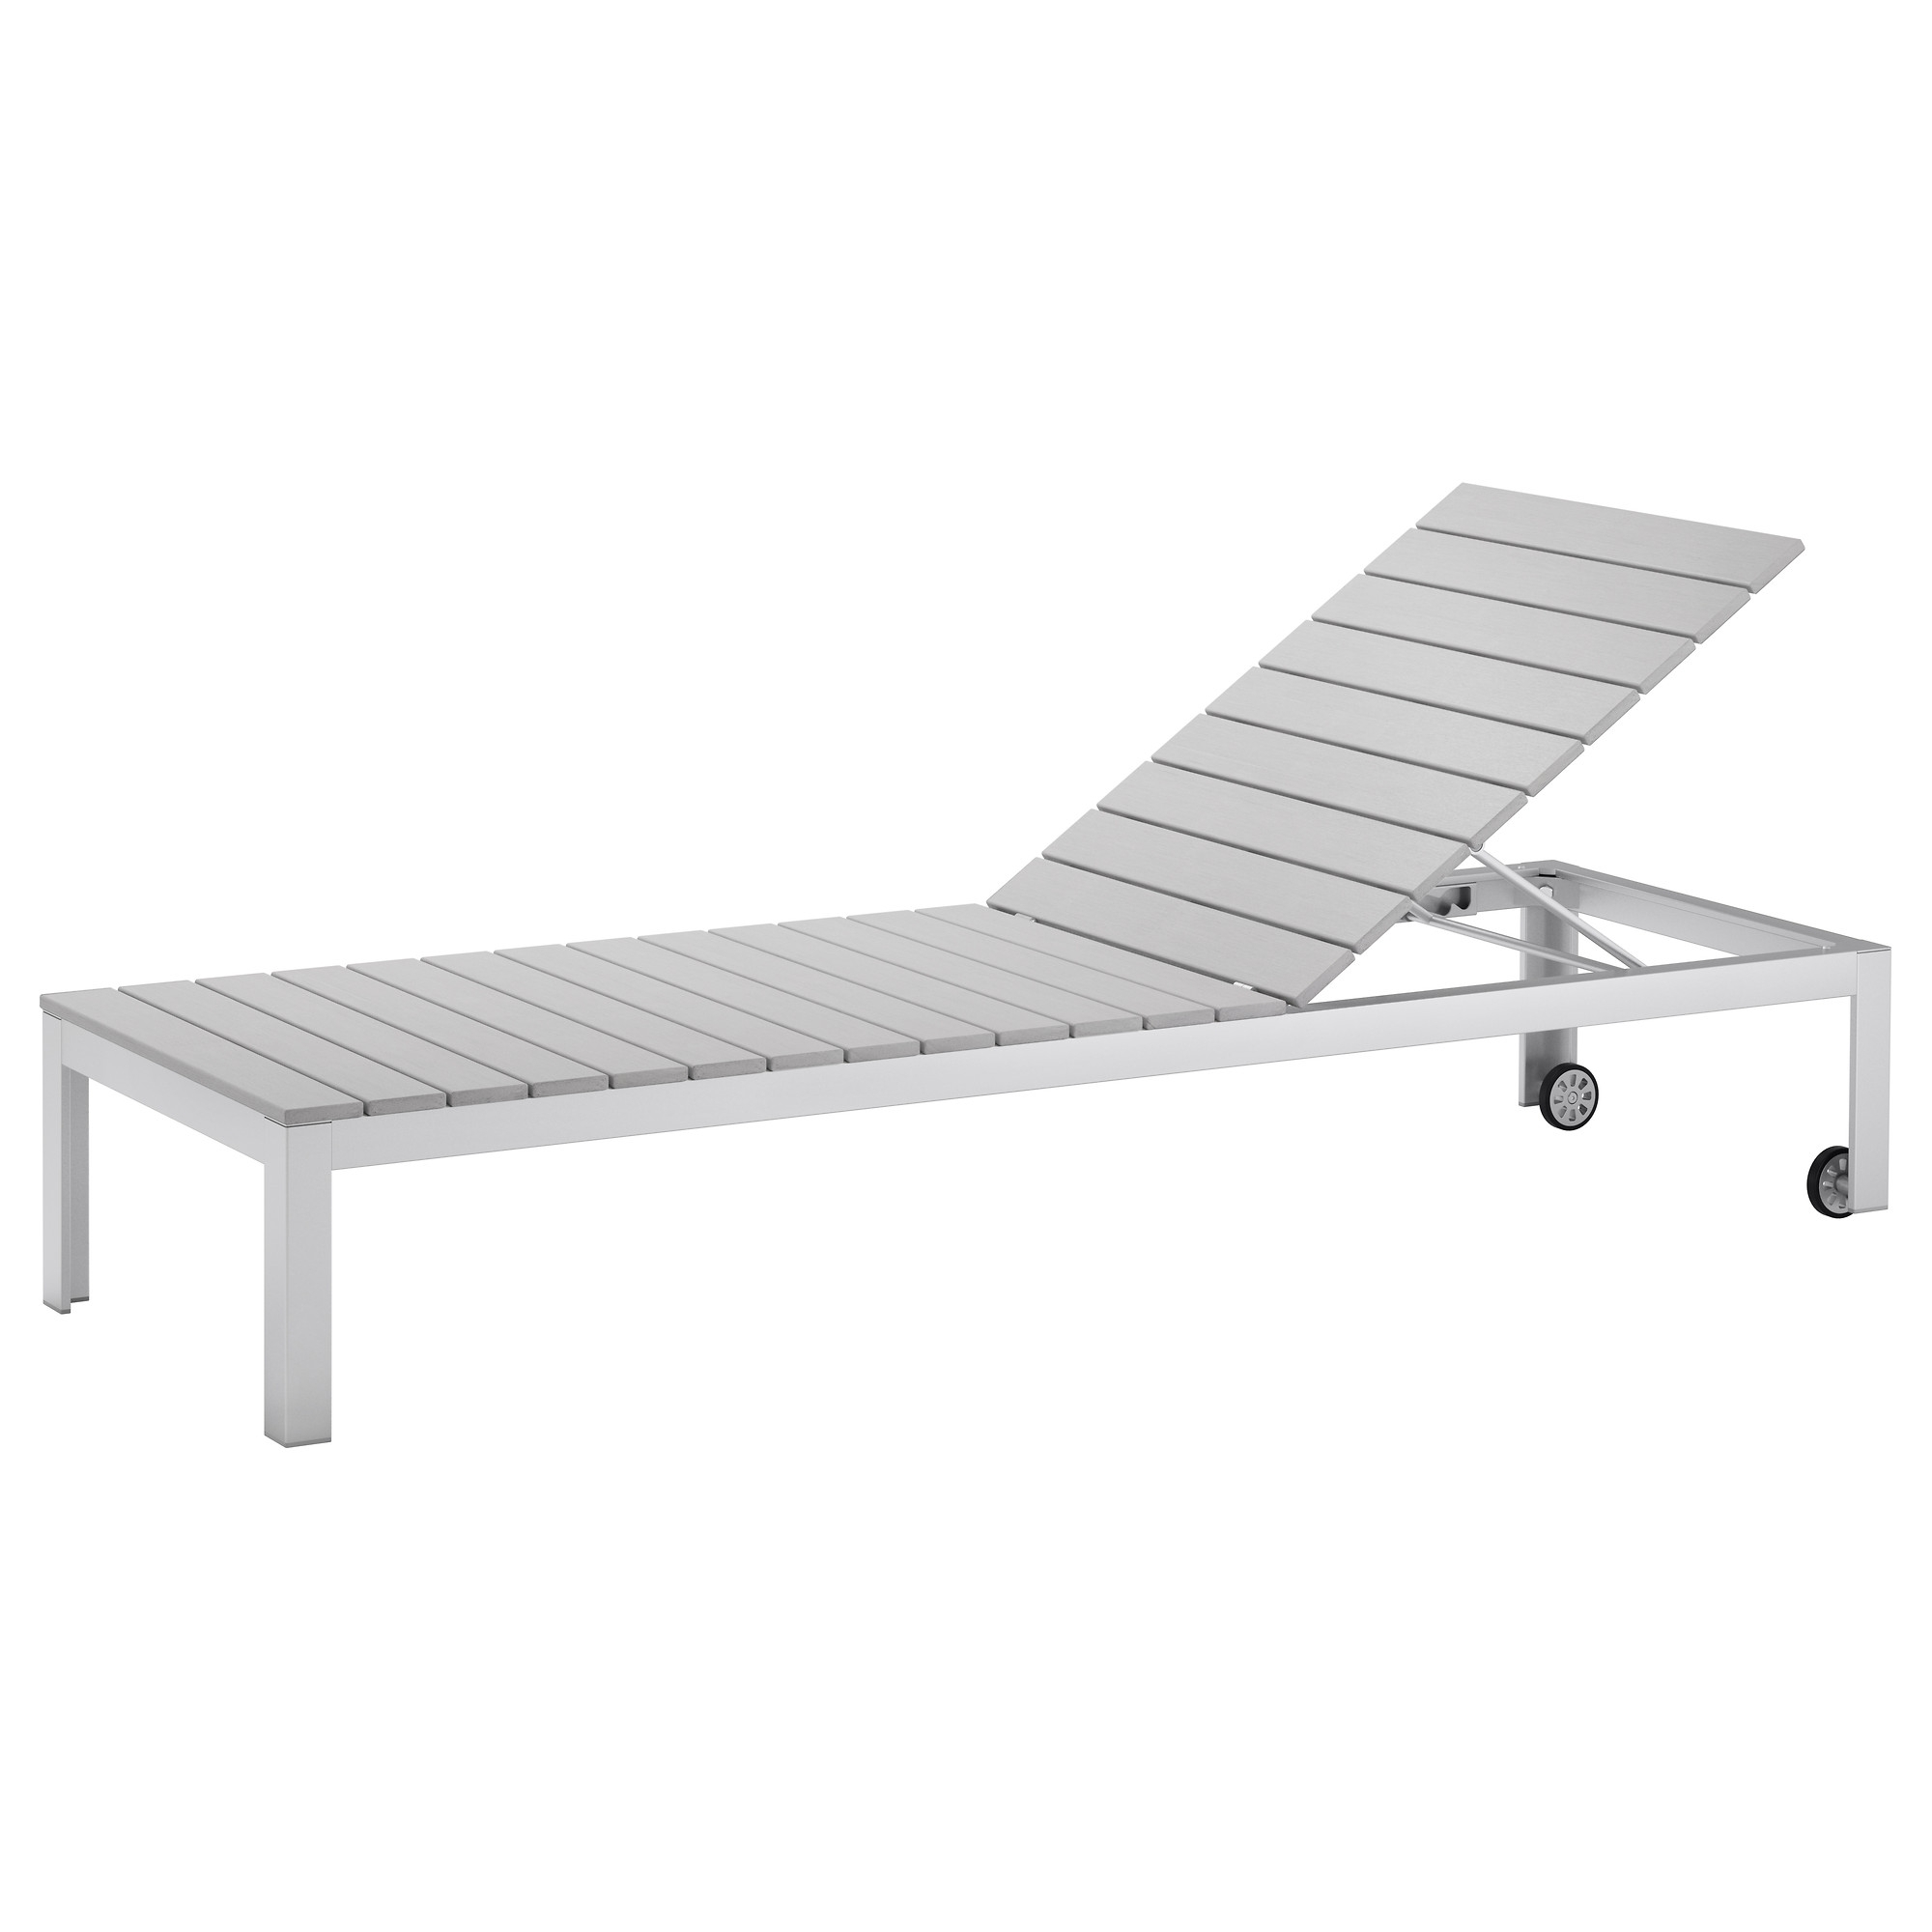 Preferred Outdoor Ikea Chaise Lounge Chairs Inside Ikea – Falster, Chaise, Gray, , , The Back Can Be Adjusted To Six (View 12 of 15)